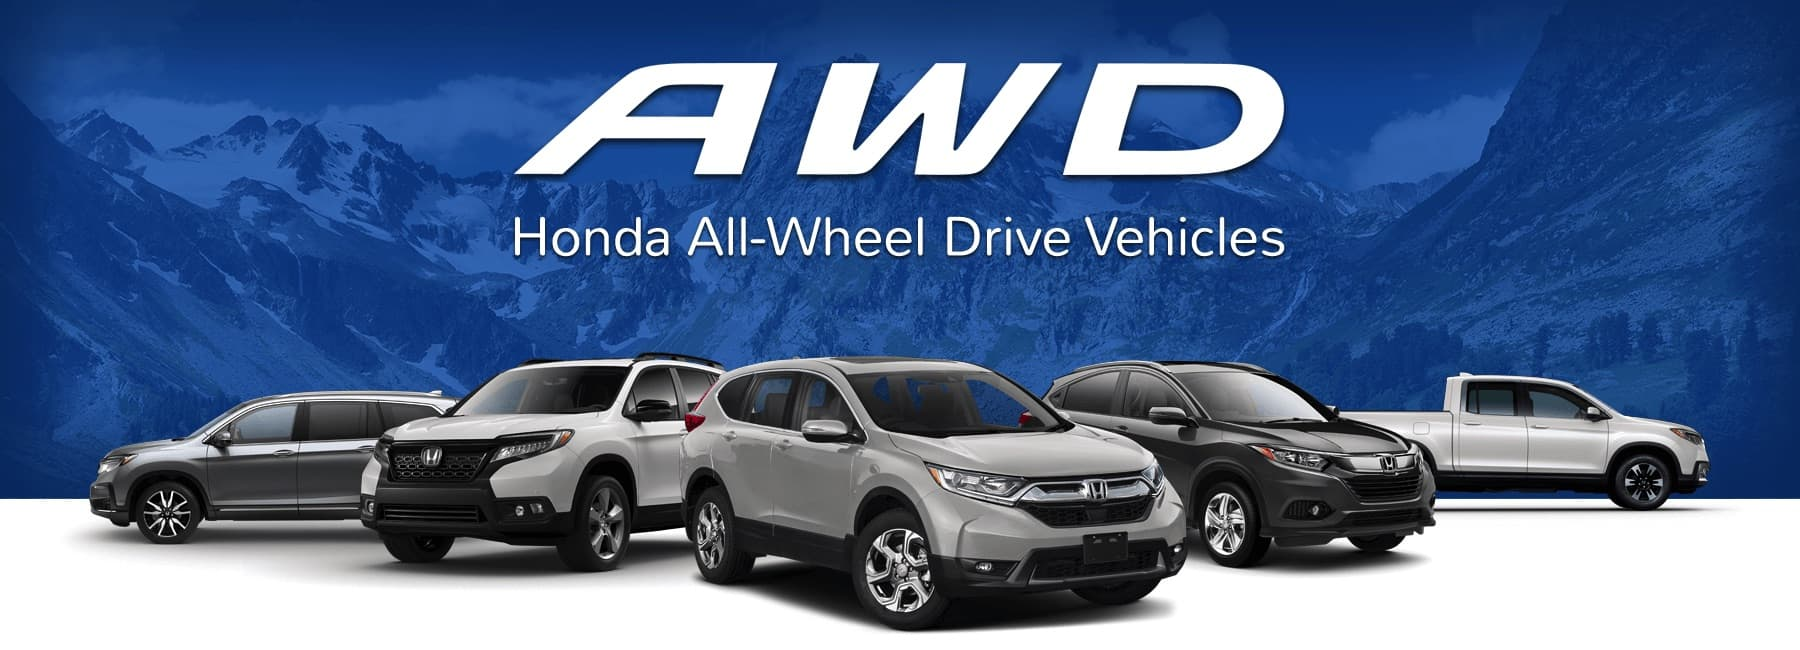 Honda All Wheel Drive Hero Image